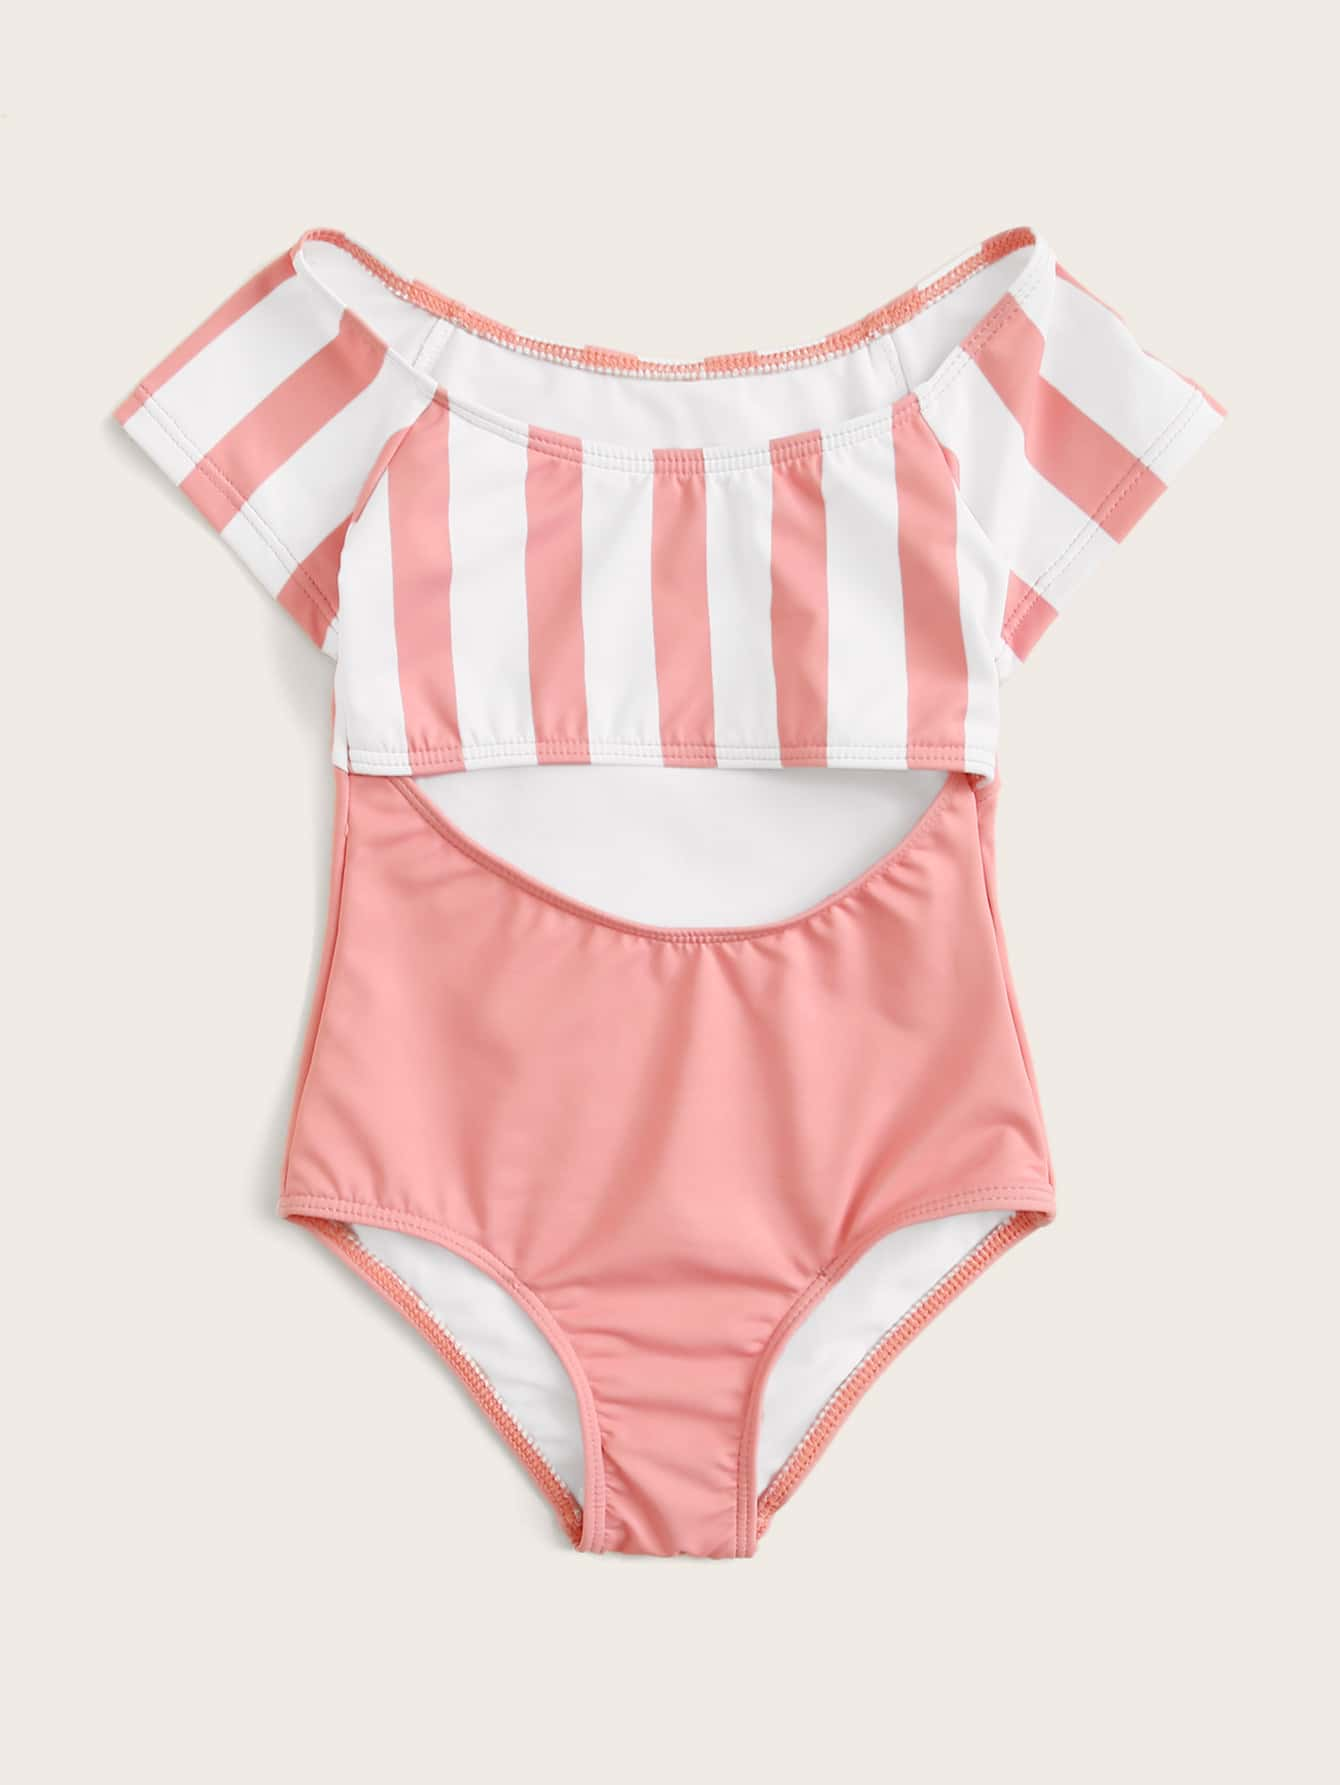 Toddler Girls Striped Short Sleeve One Piece Swimwear - FLJ CORPORATIONS